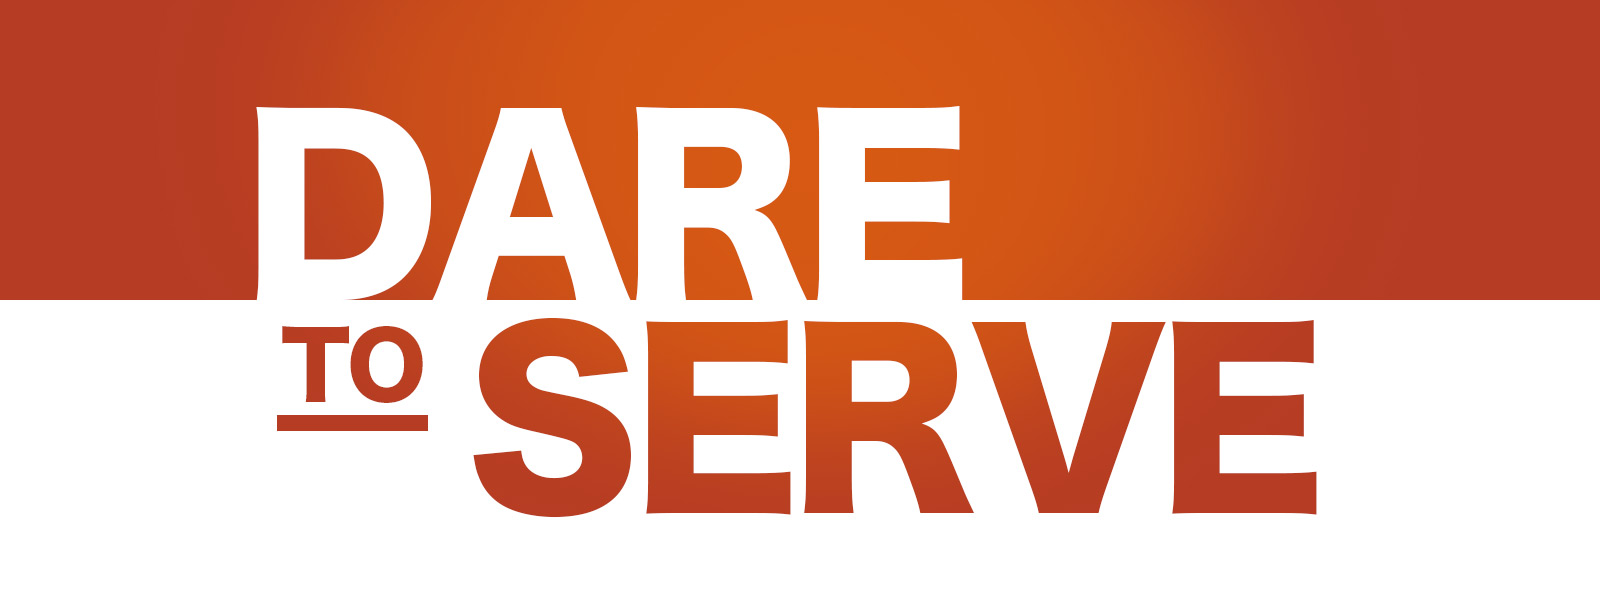 Dare To Serve.